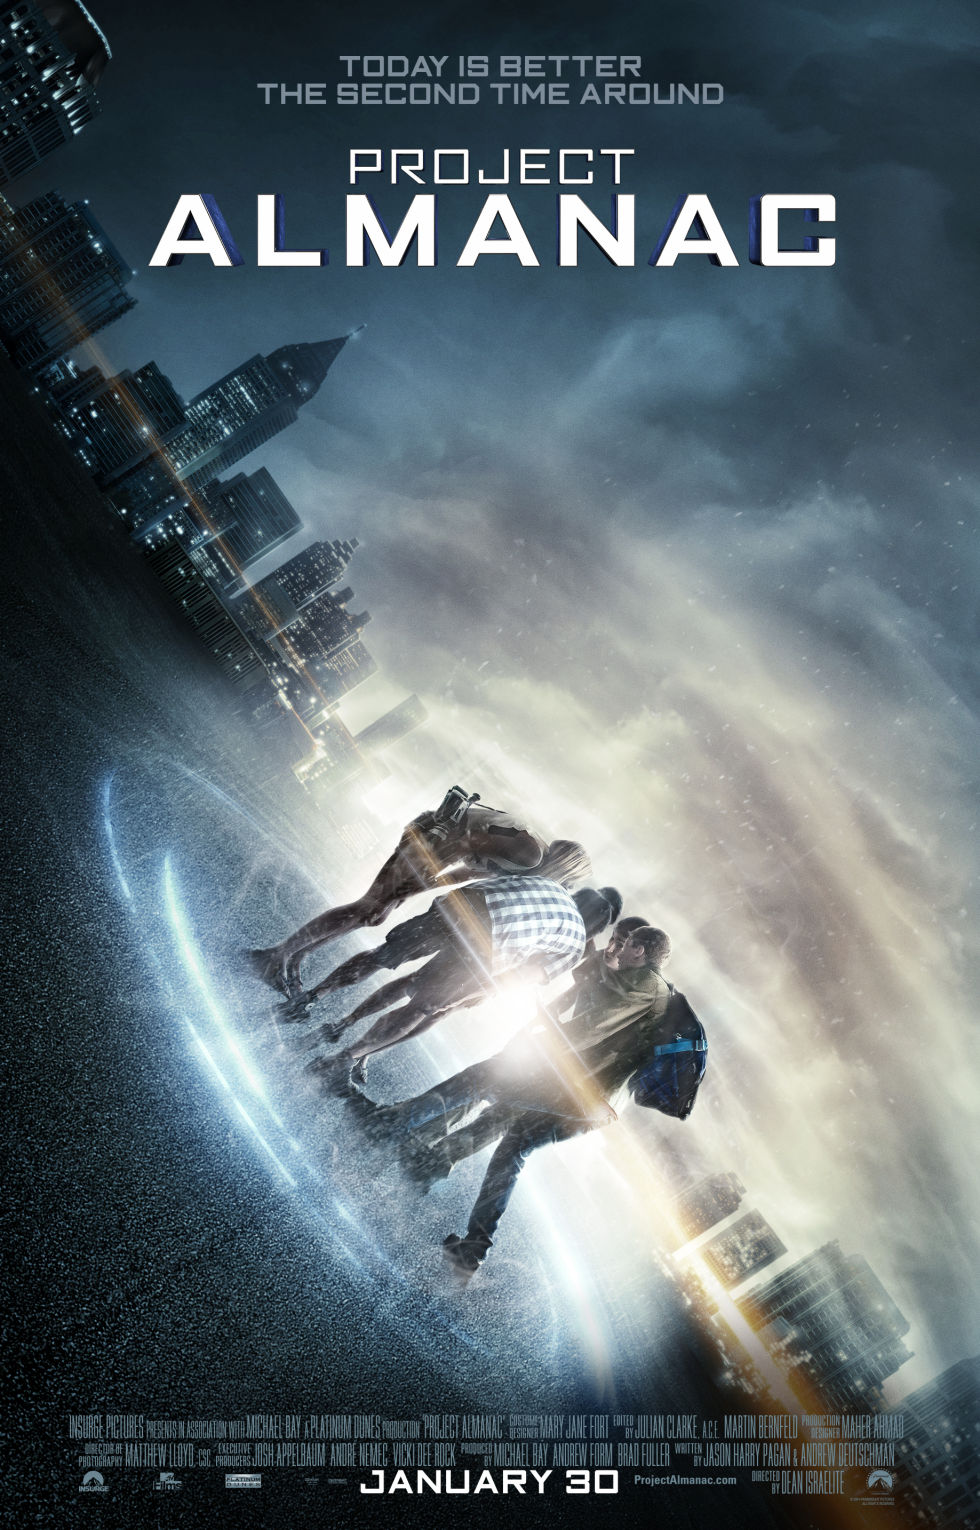 trailer-for-the-found-footage-time-travel-film-project-almanac